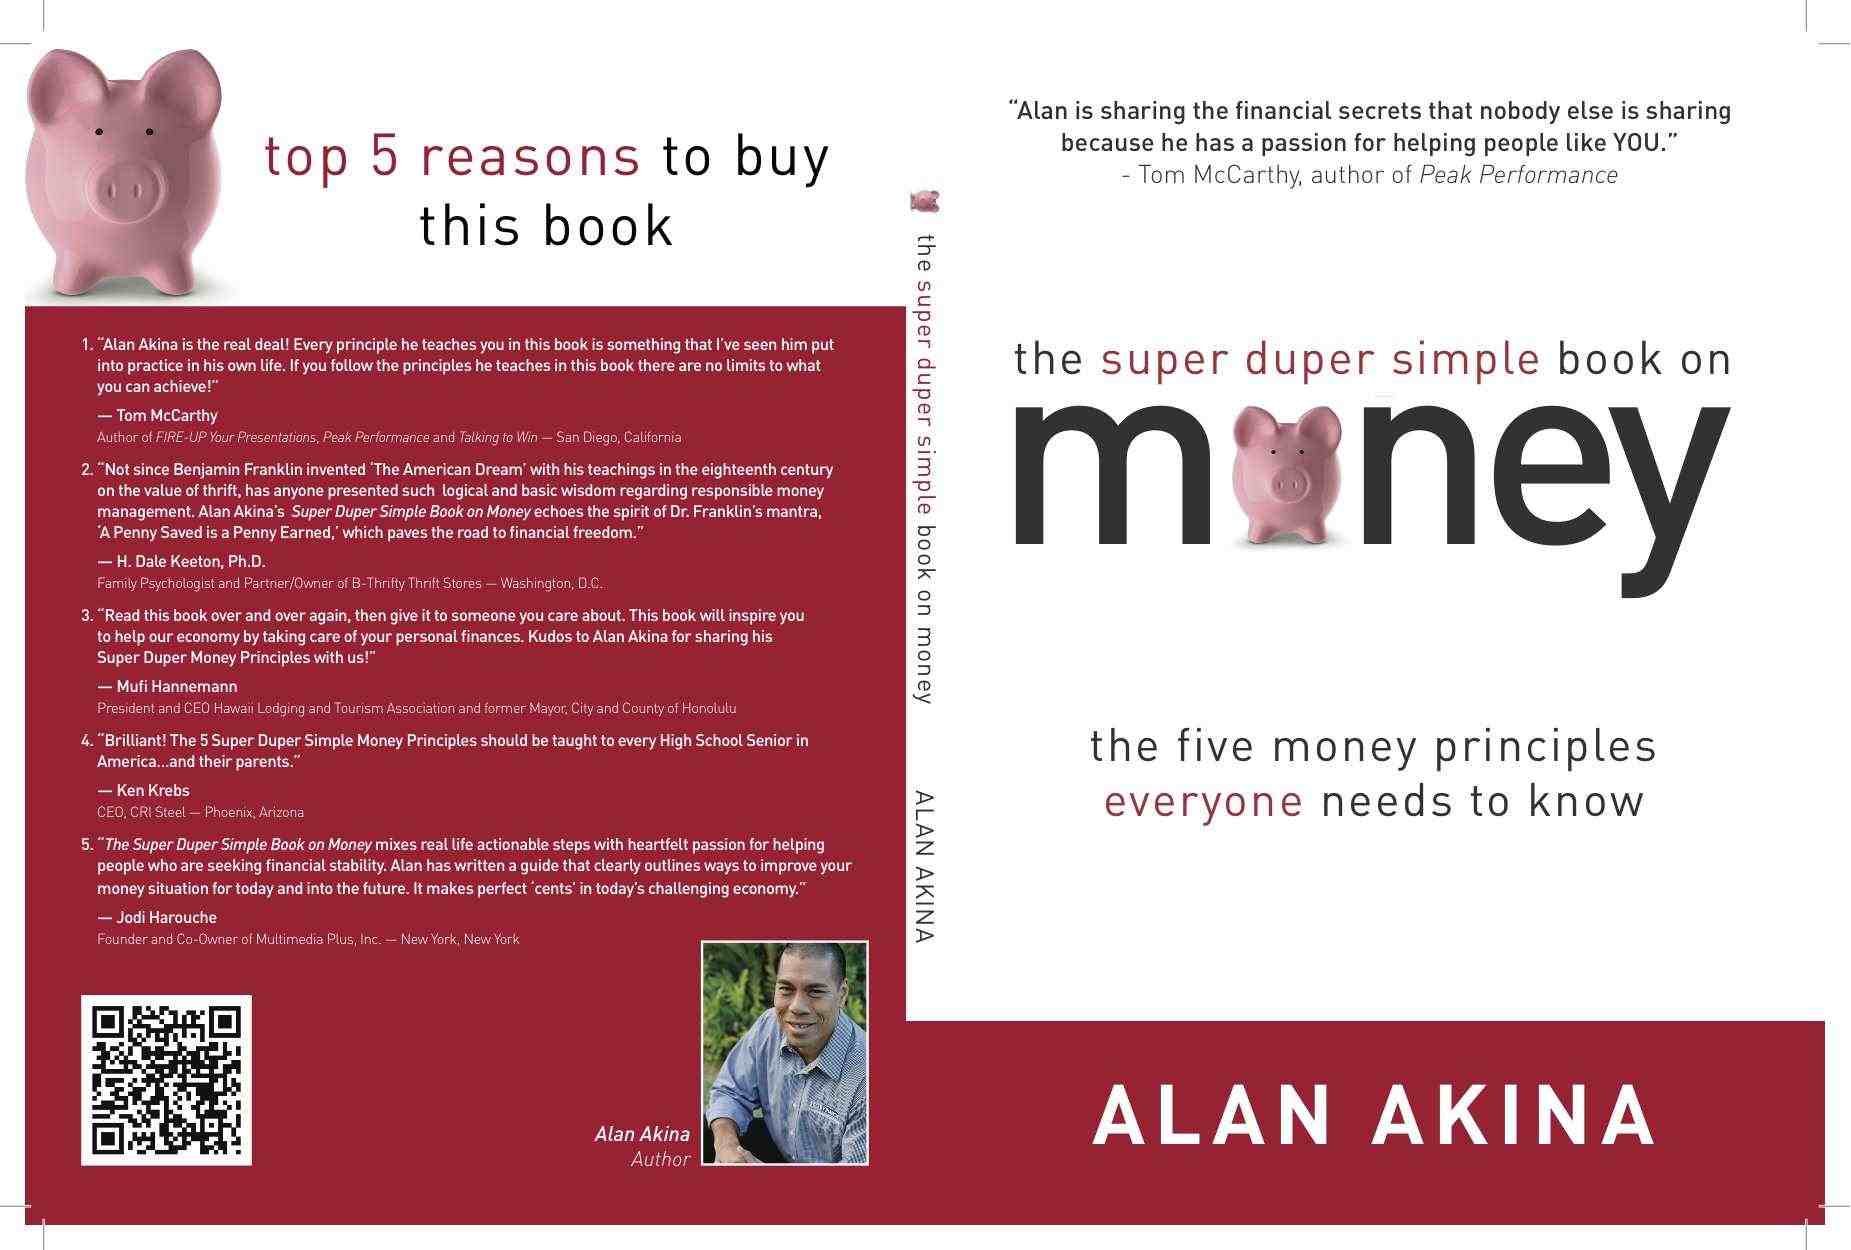 The Super Duper Simple Book on Money